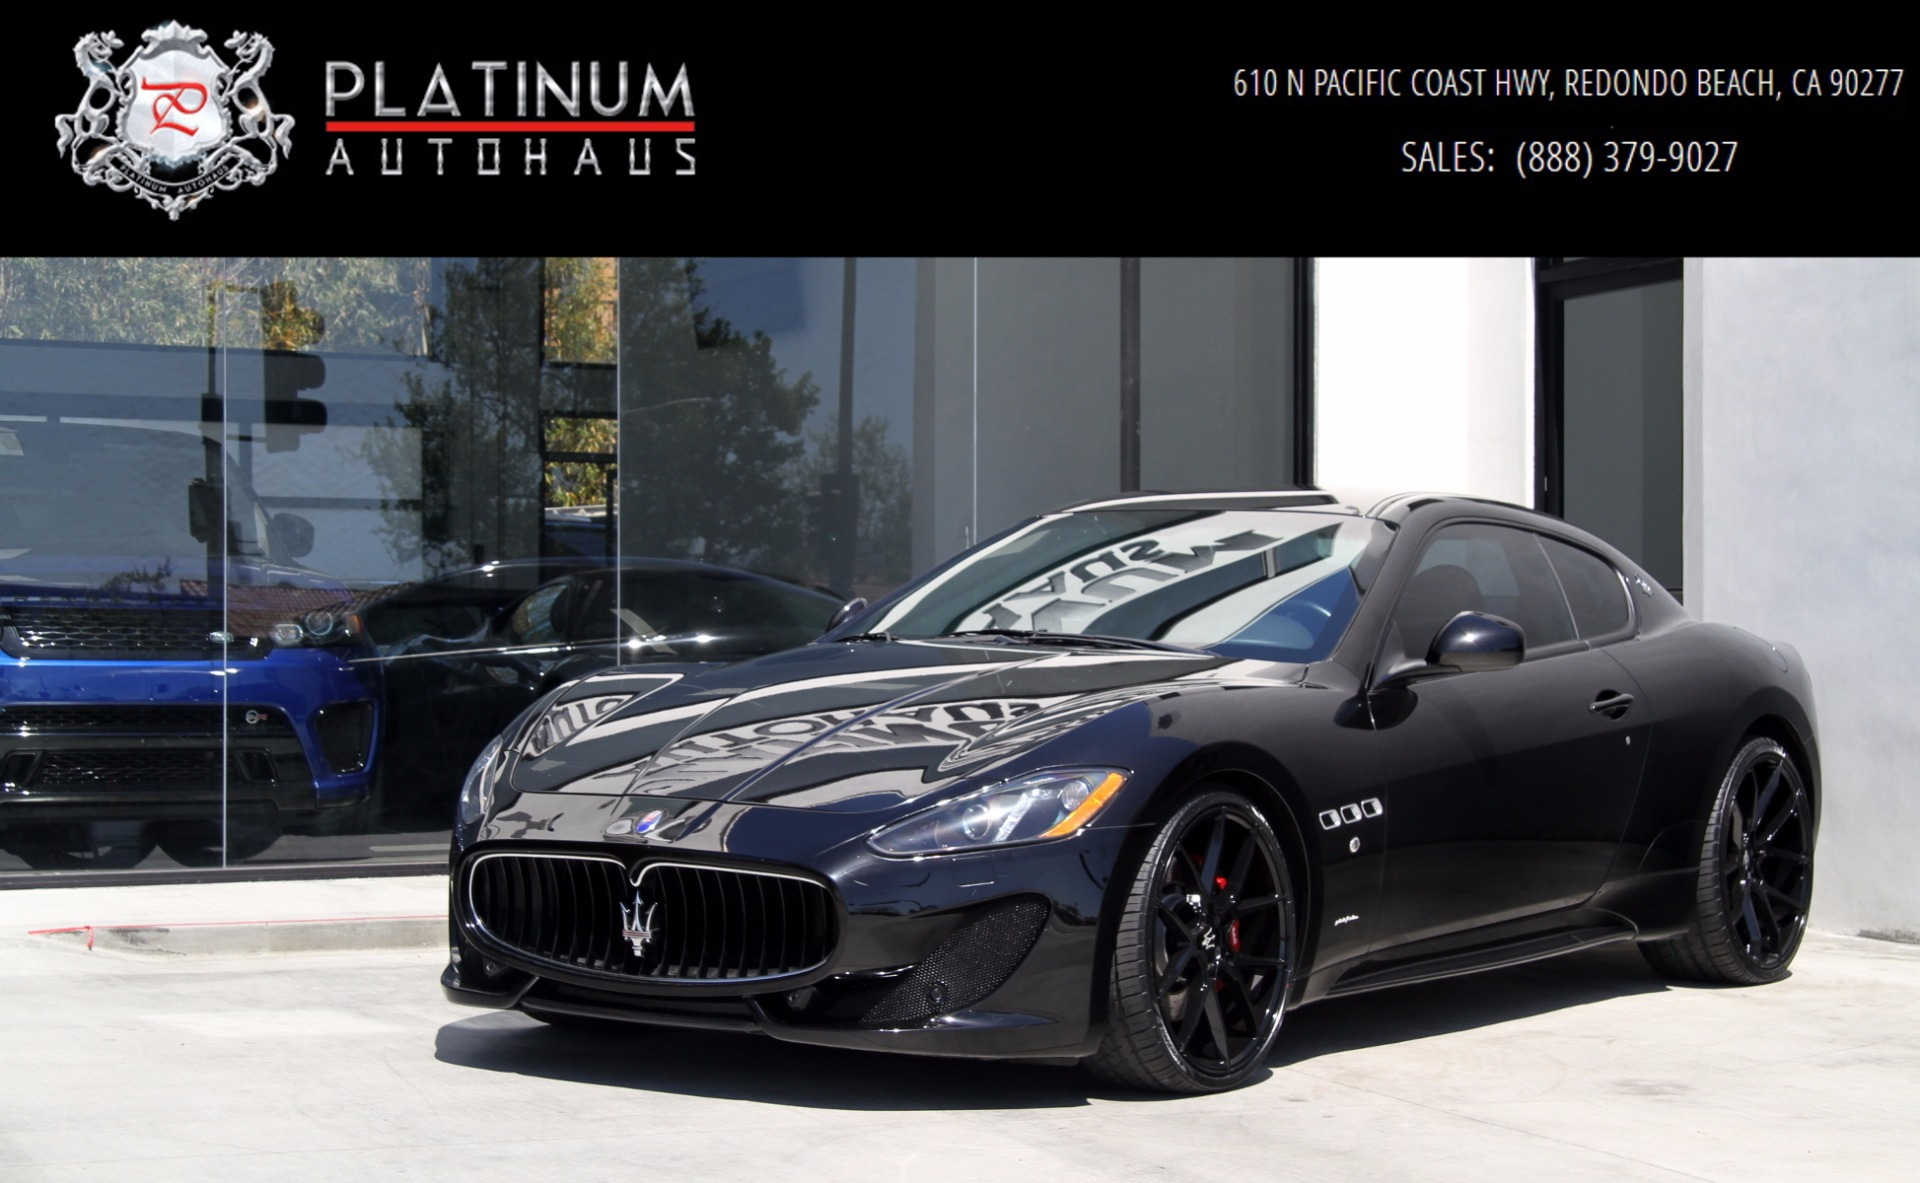 2013 Maserati GranTurismo Sport Stock # 6016A for sale near Redondo ...